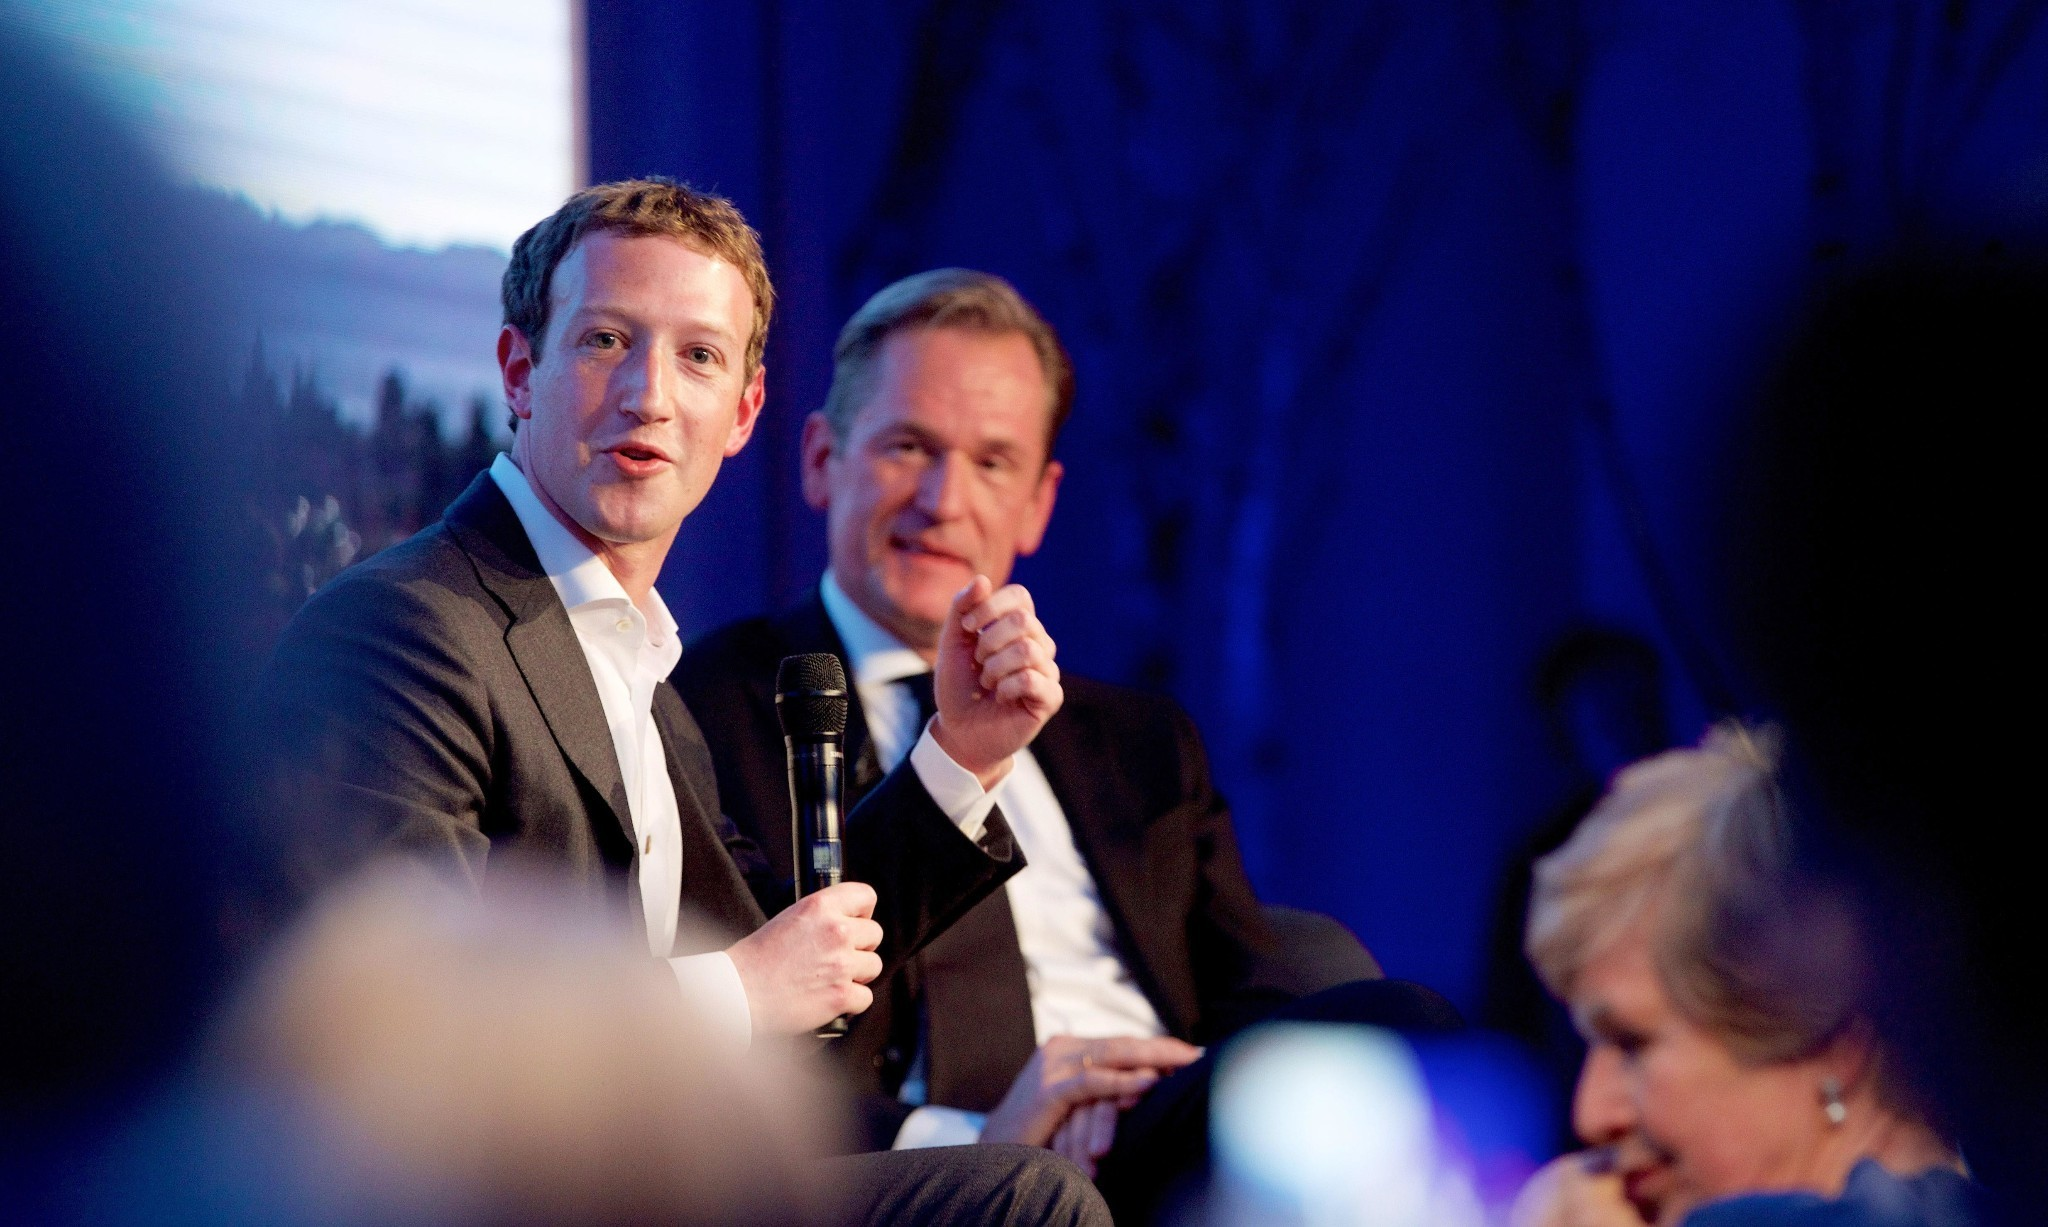 Mark Zuckerberg in Germany: 'Hate speech has no place on Facebook'